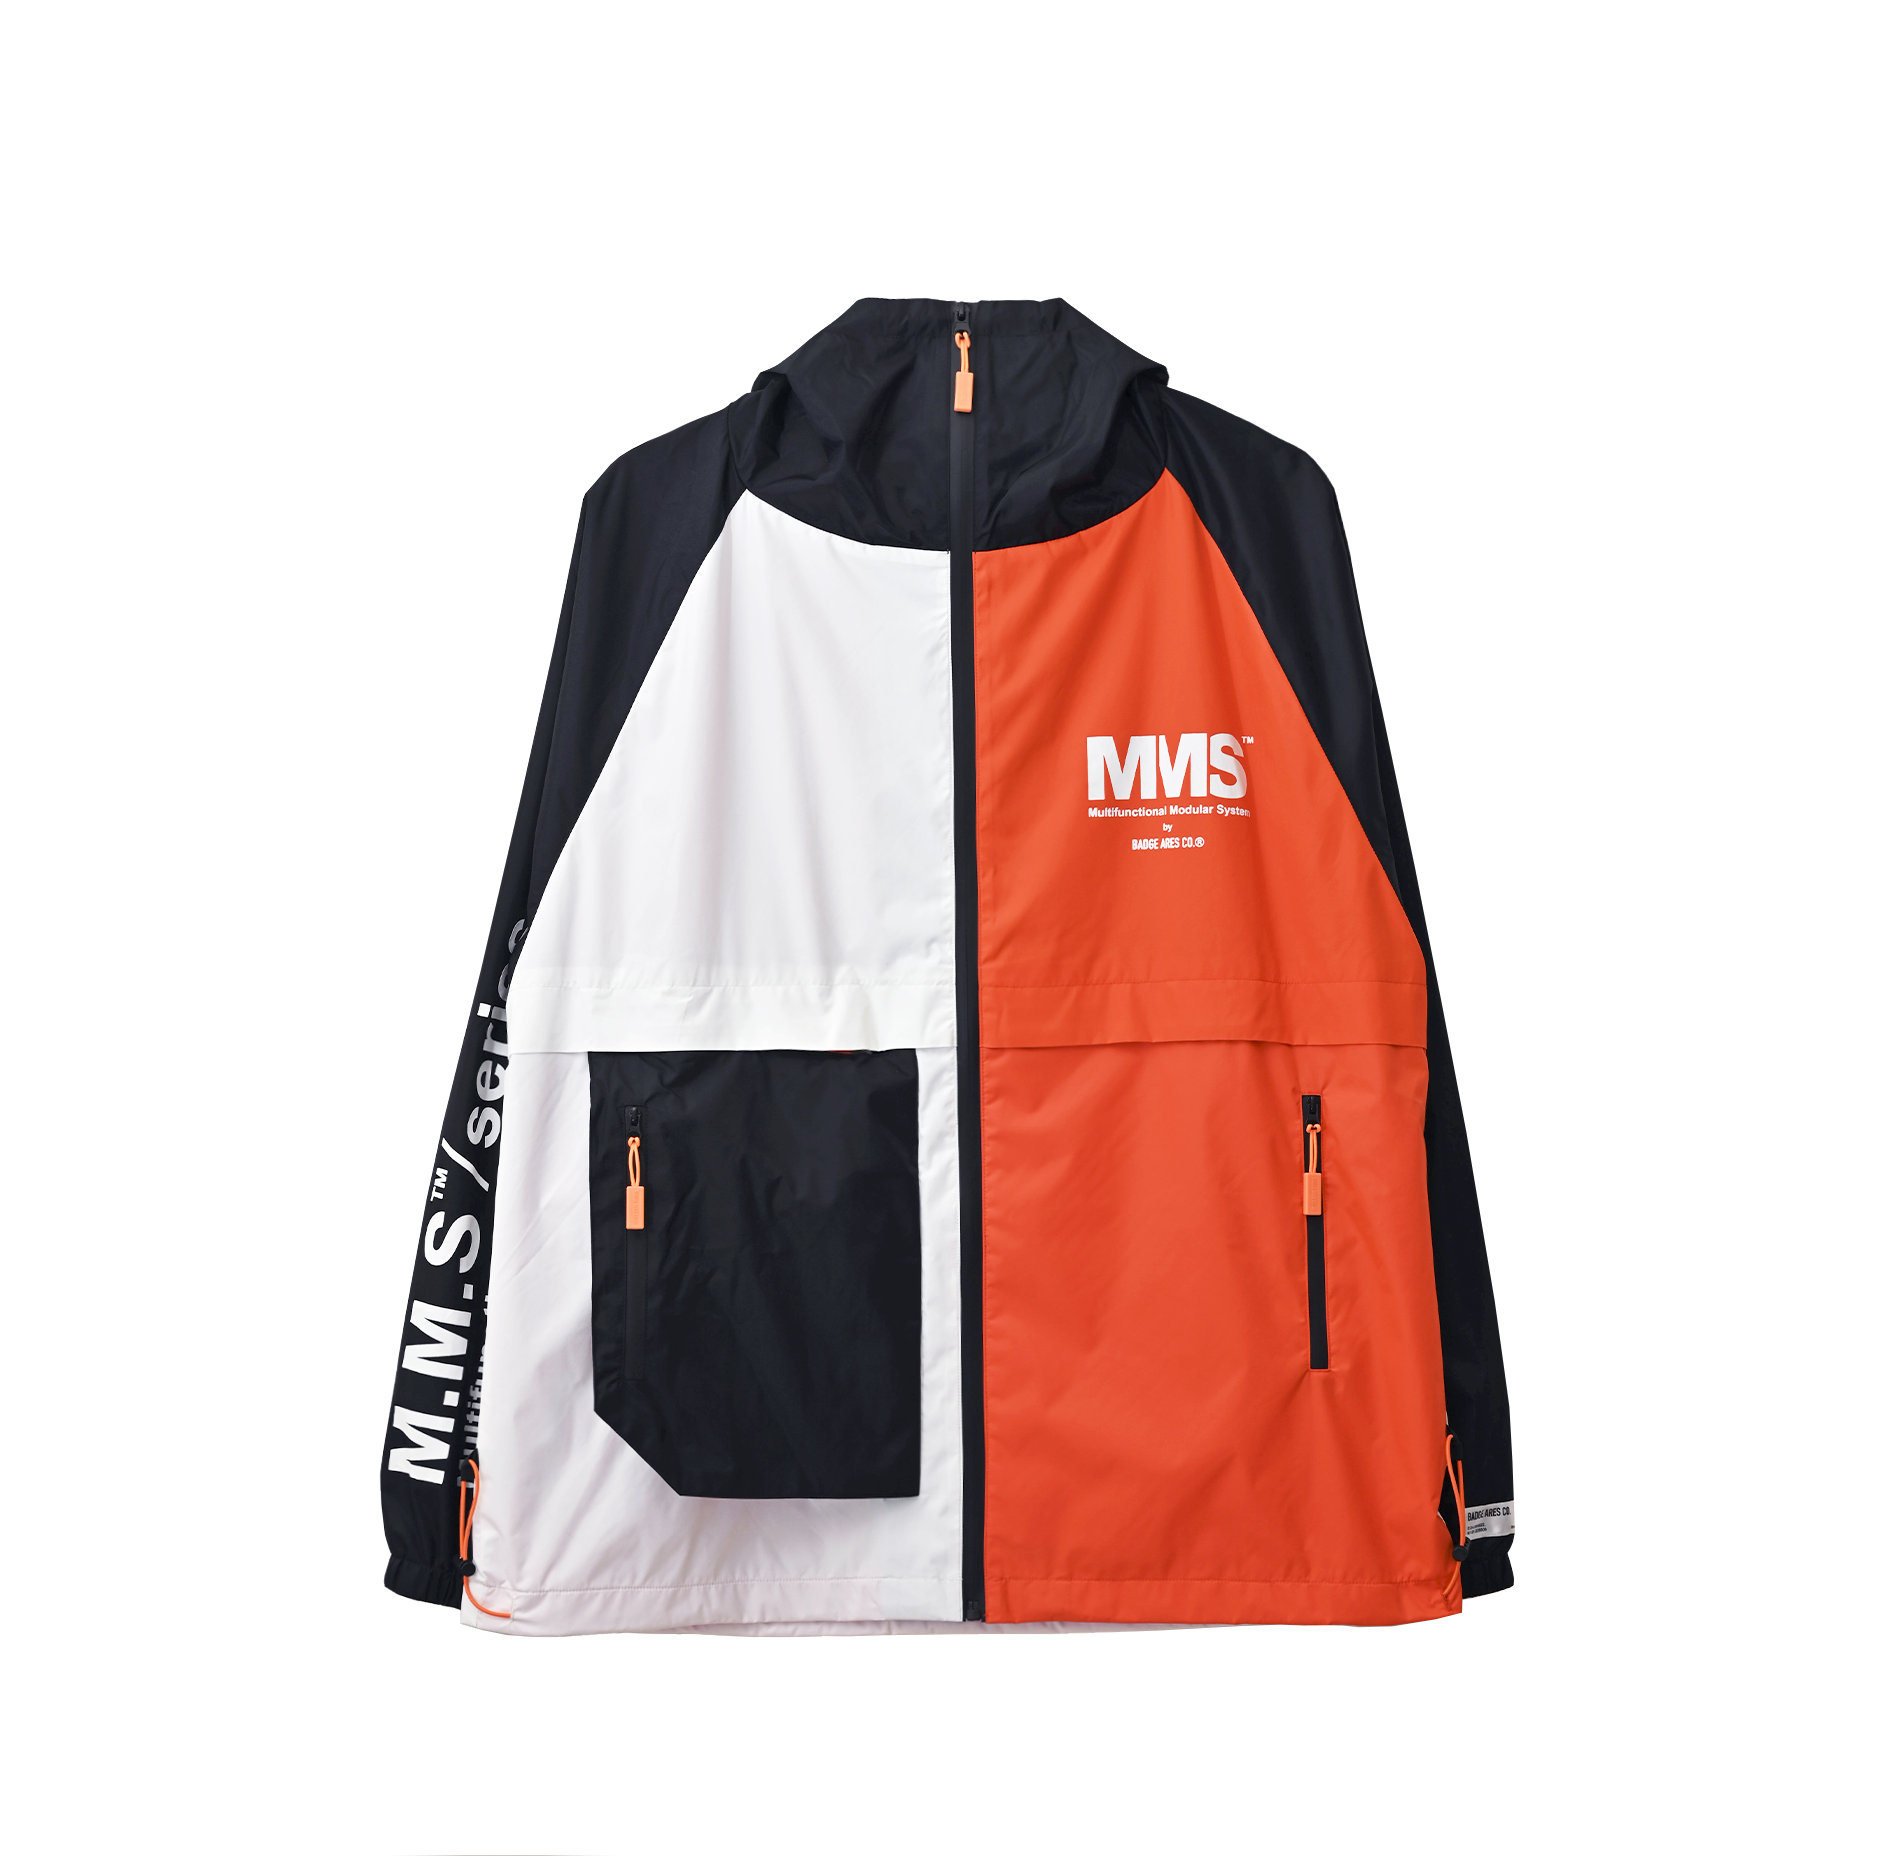 MMS_SPORTJACKET_黑01.png